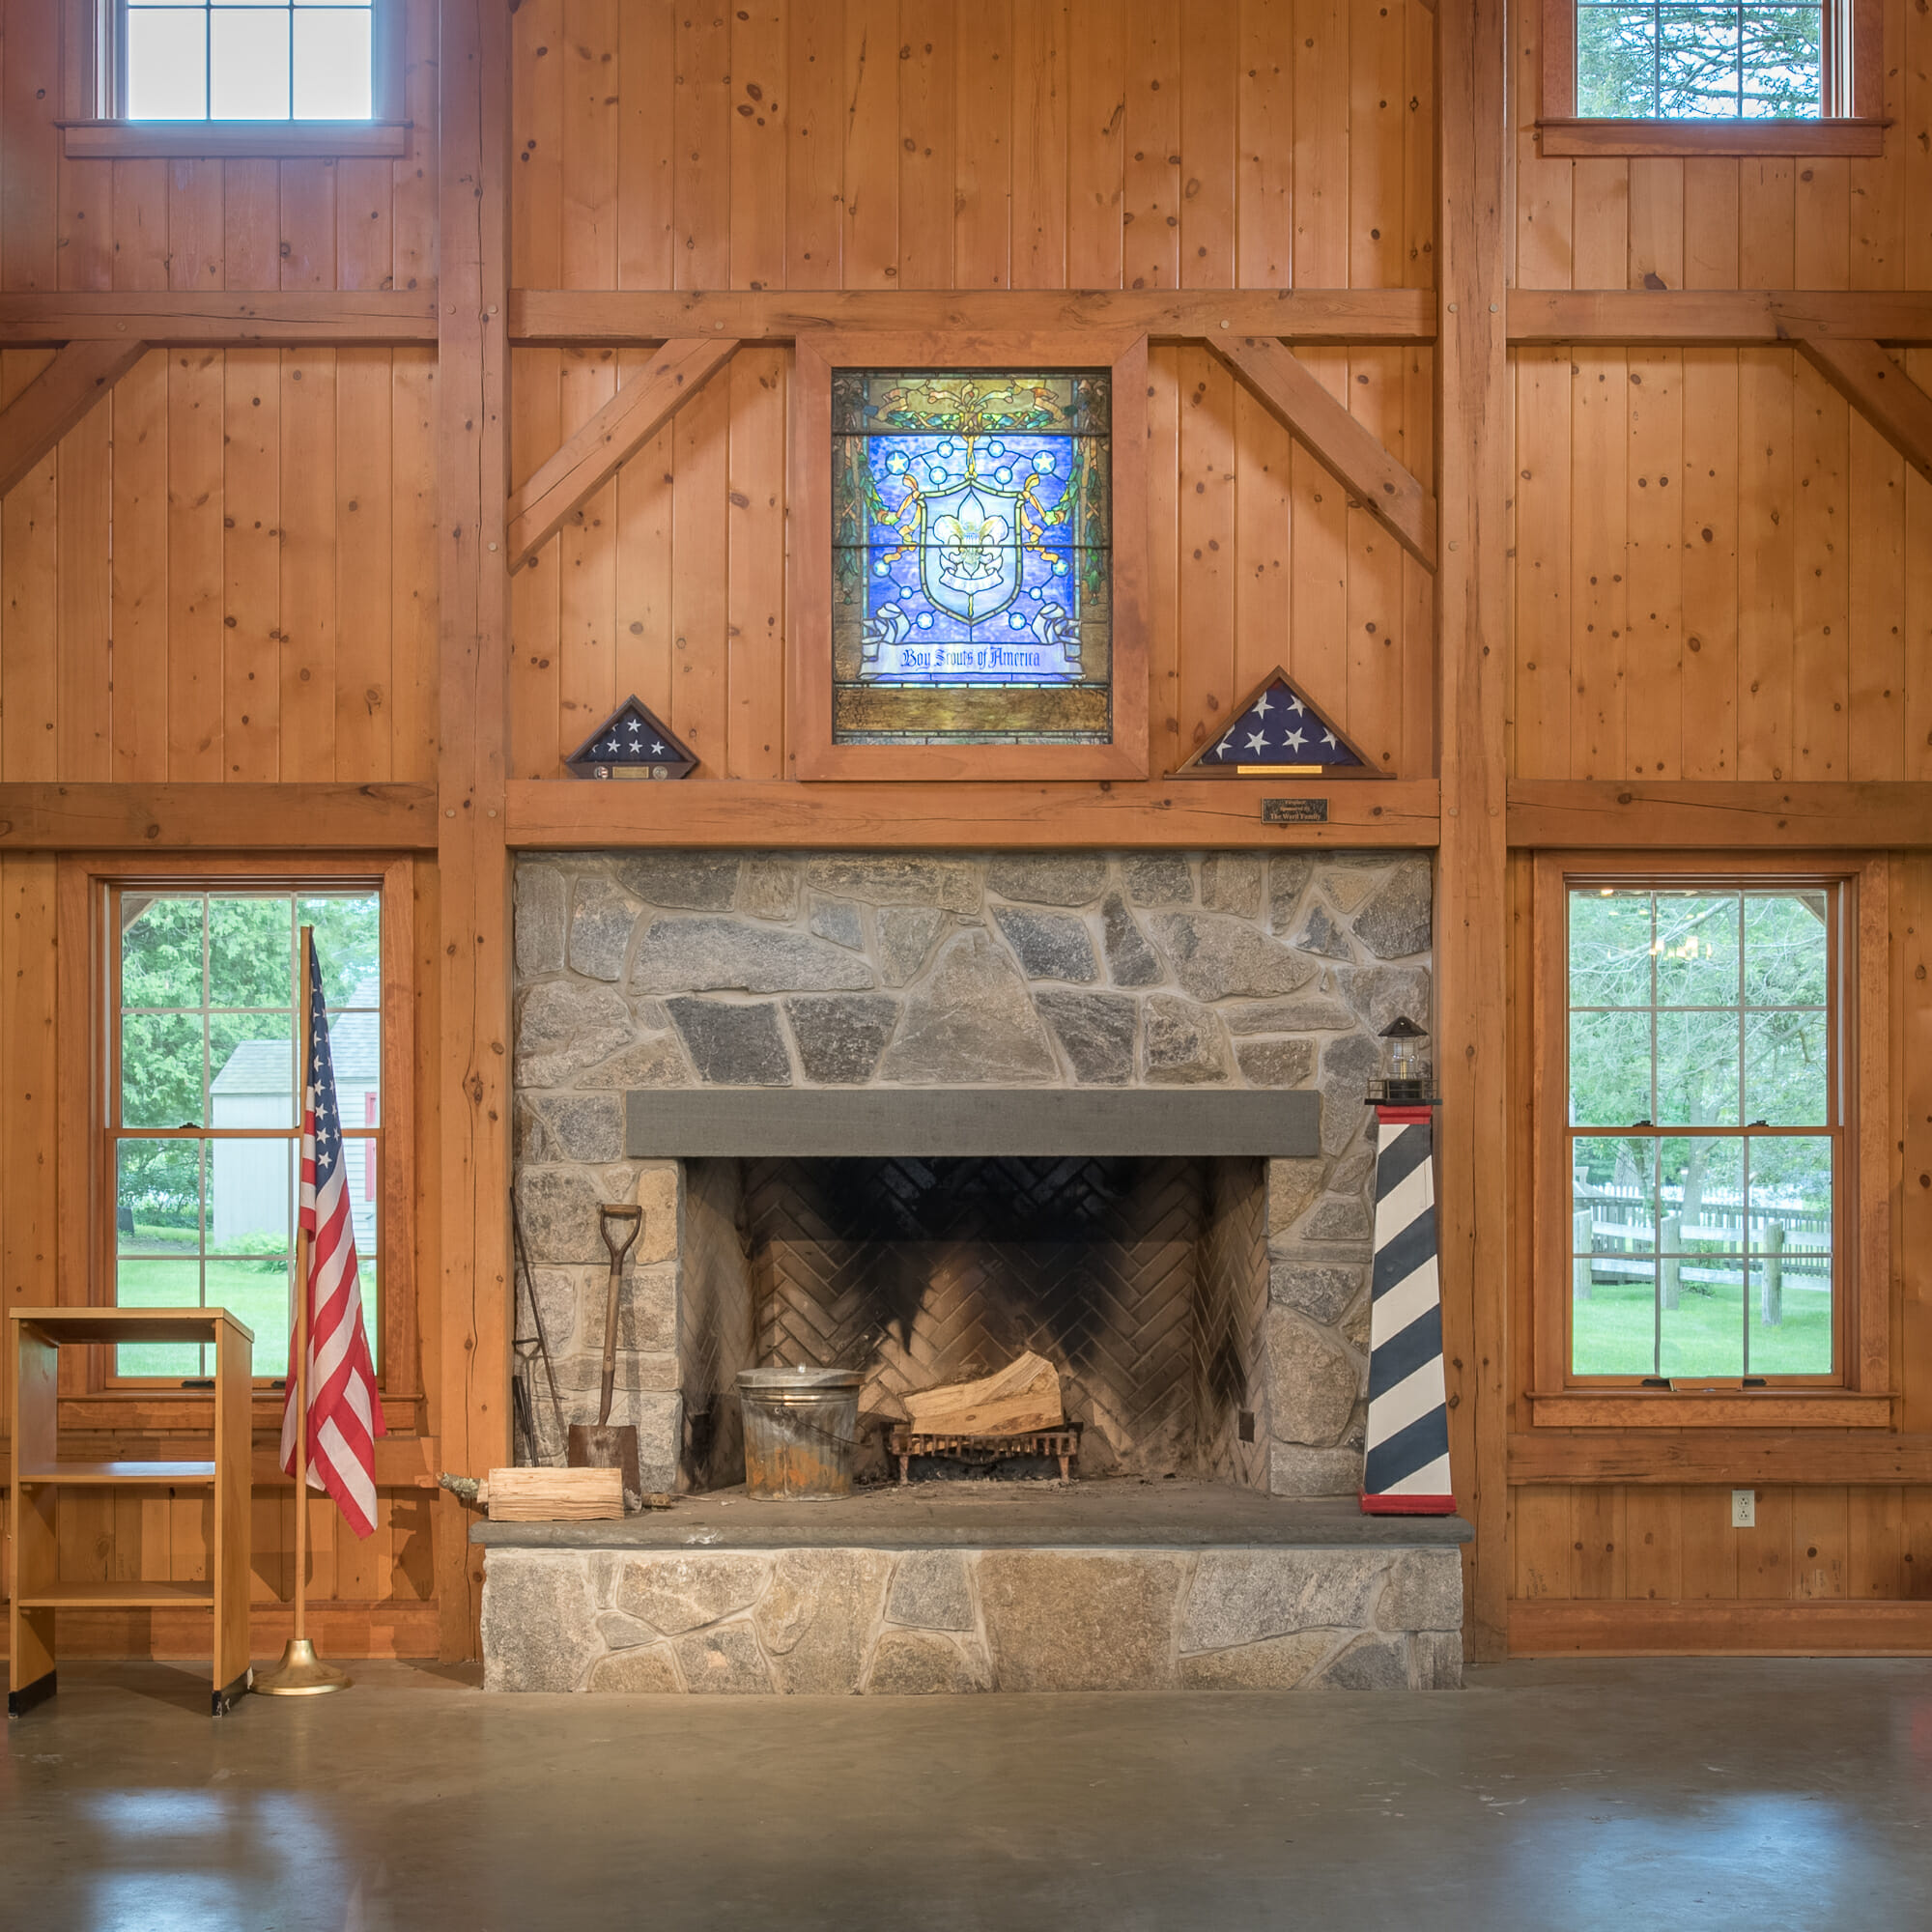 Dining Hall: Dining Hall Timber Frame For Scouts BSA